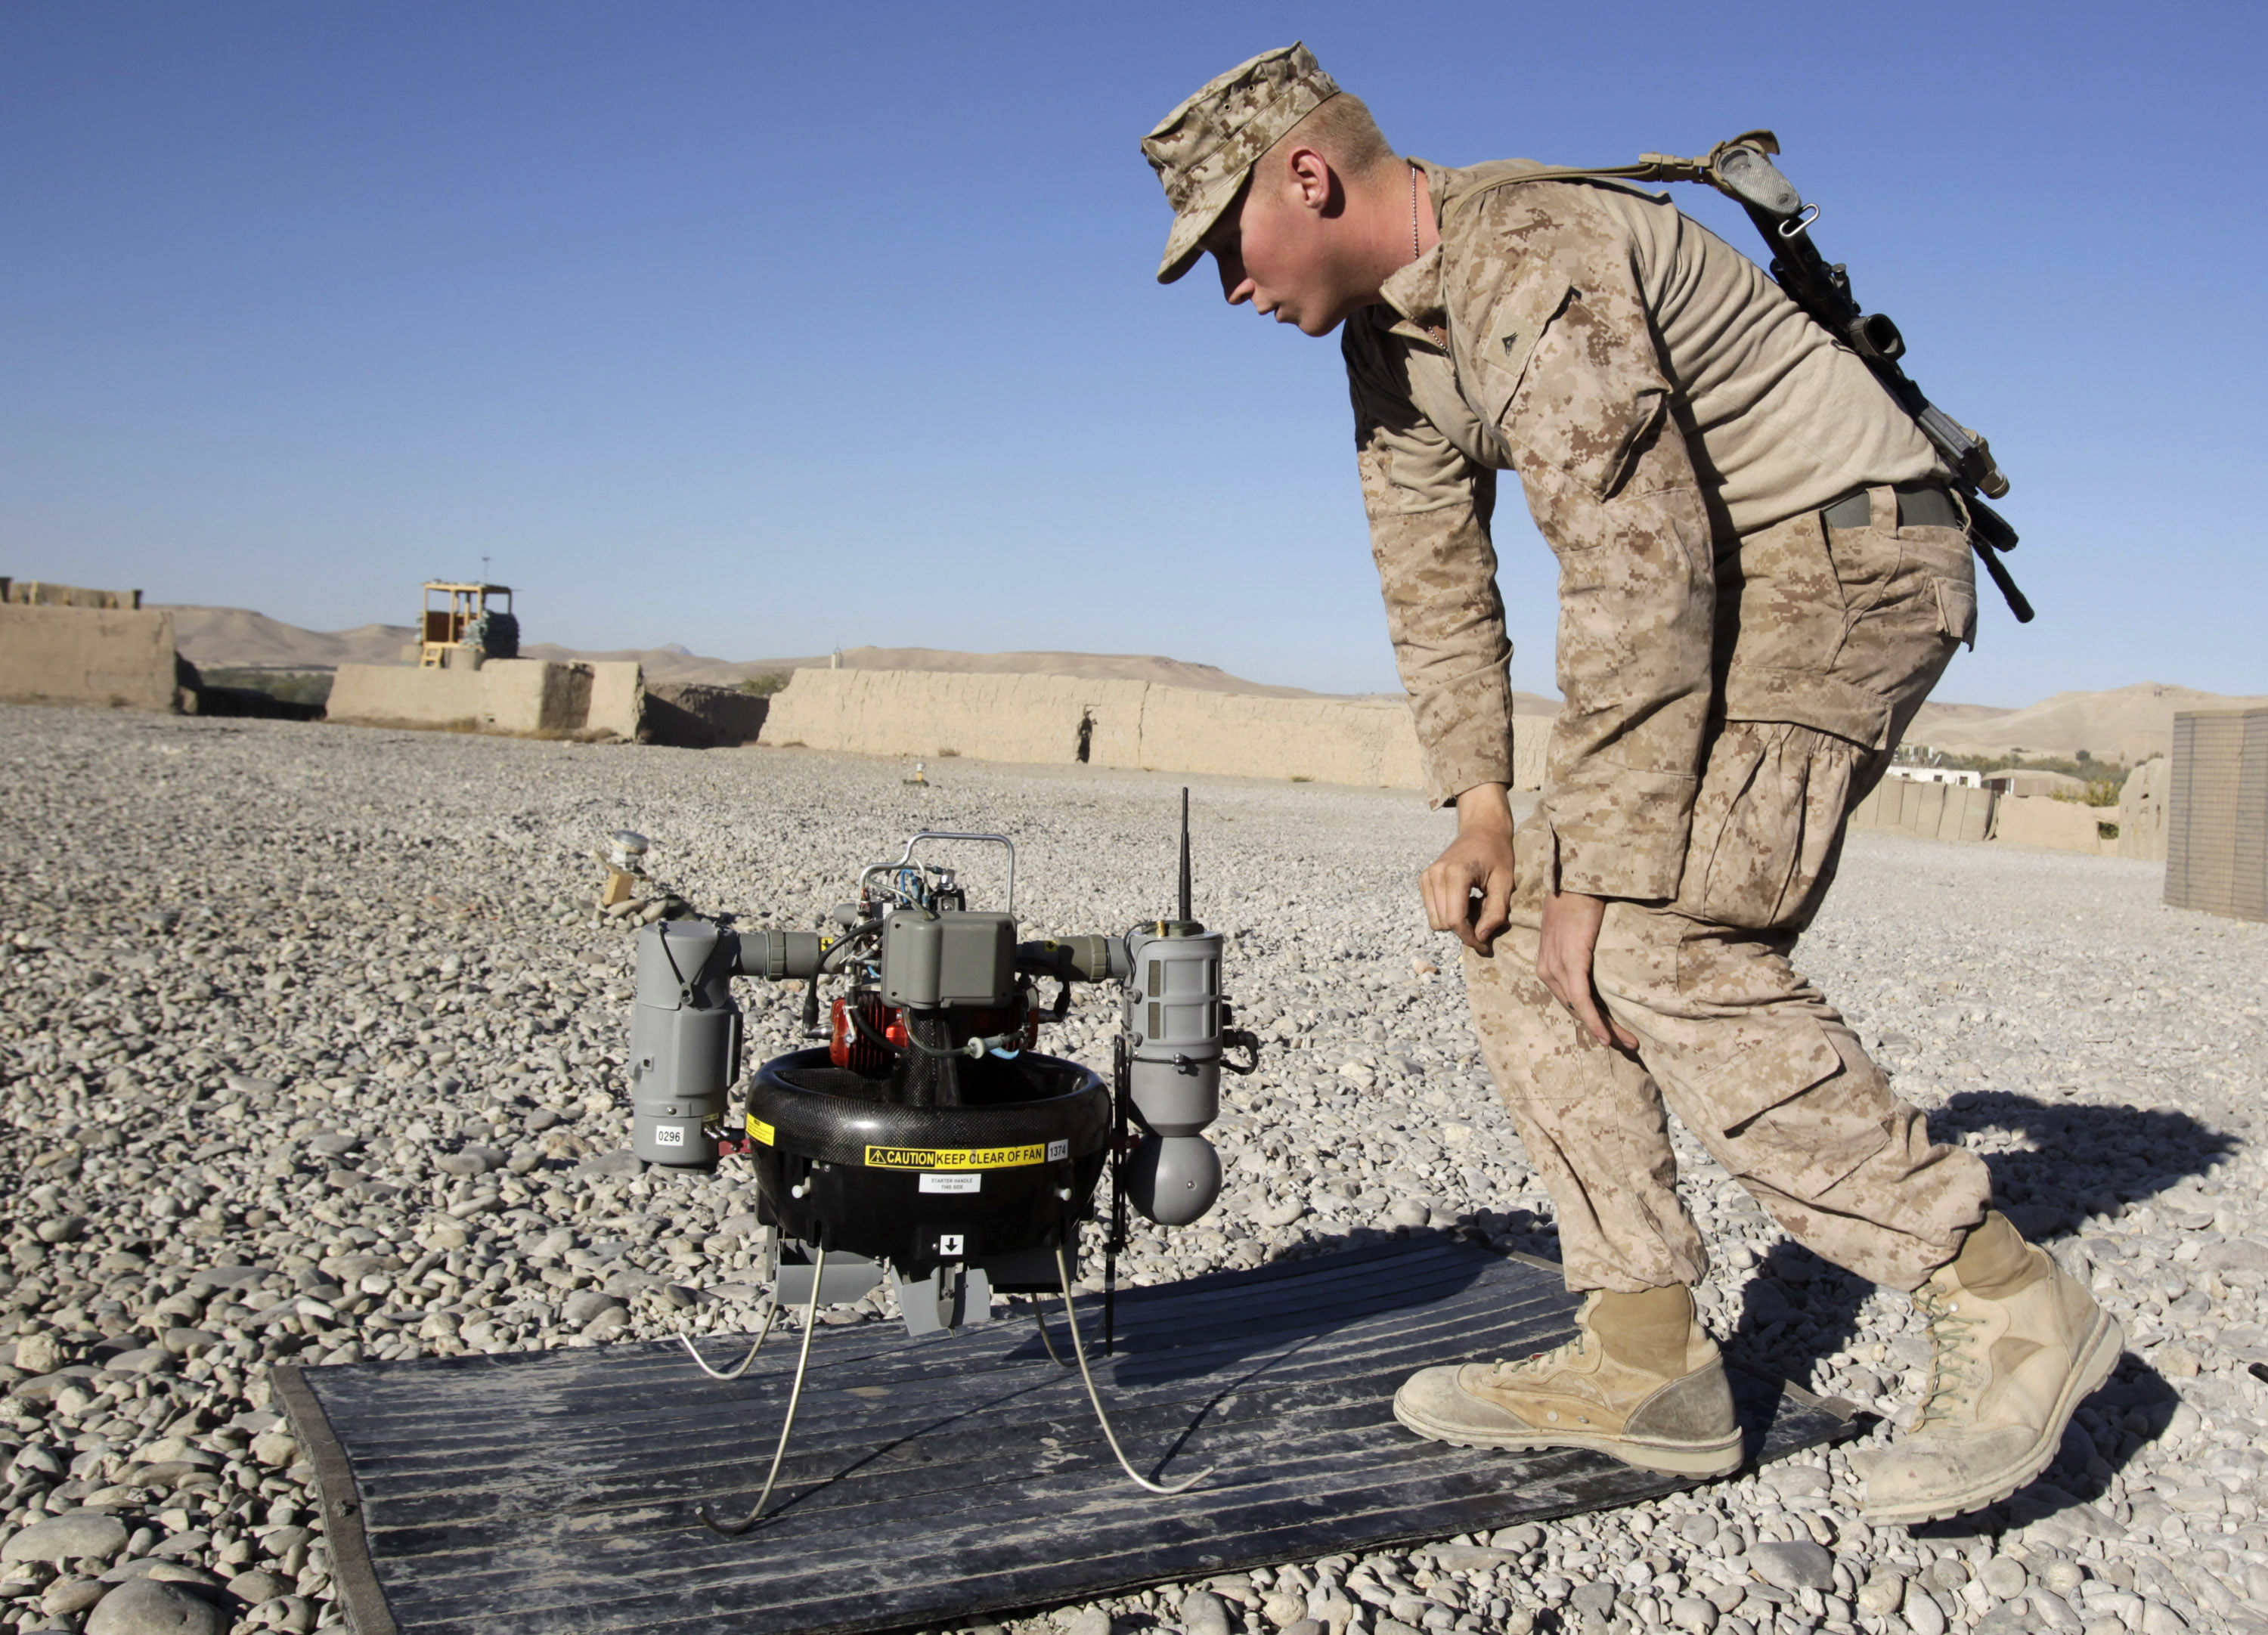 Why Drones Work: The Case For Washington's Weapon Of Choice